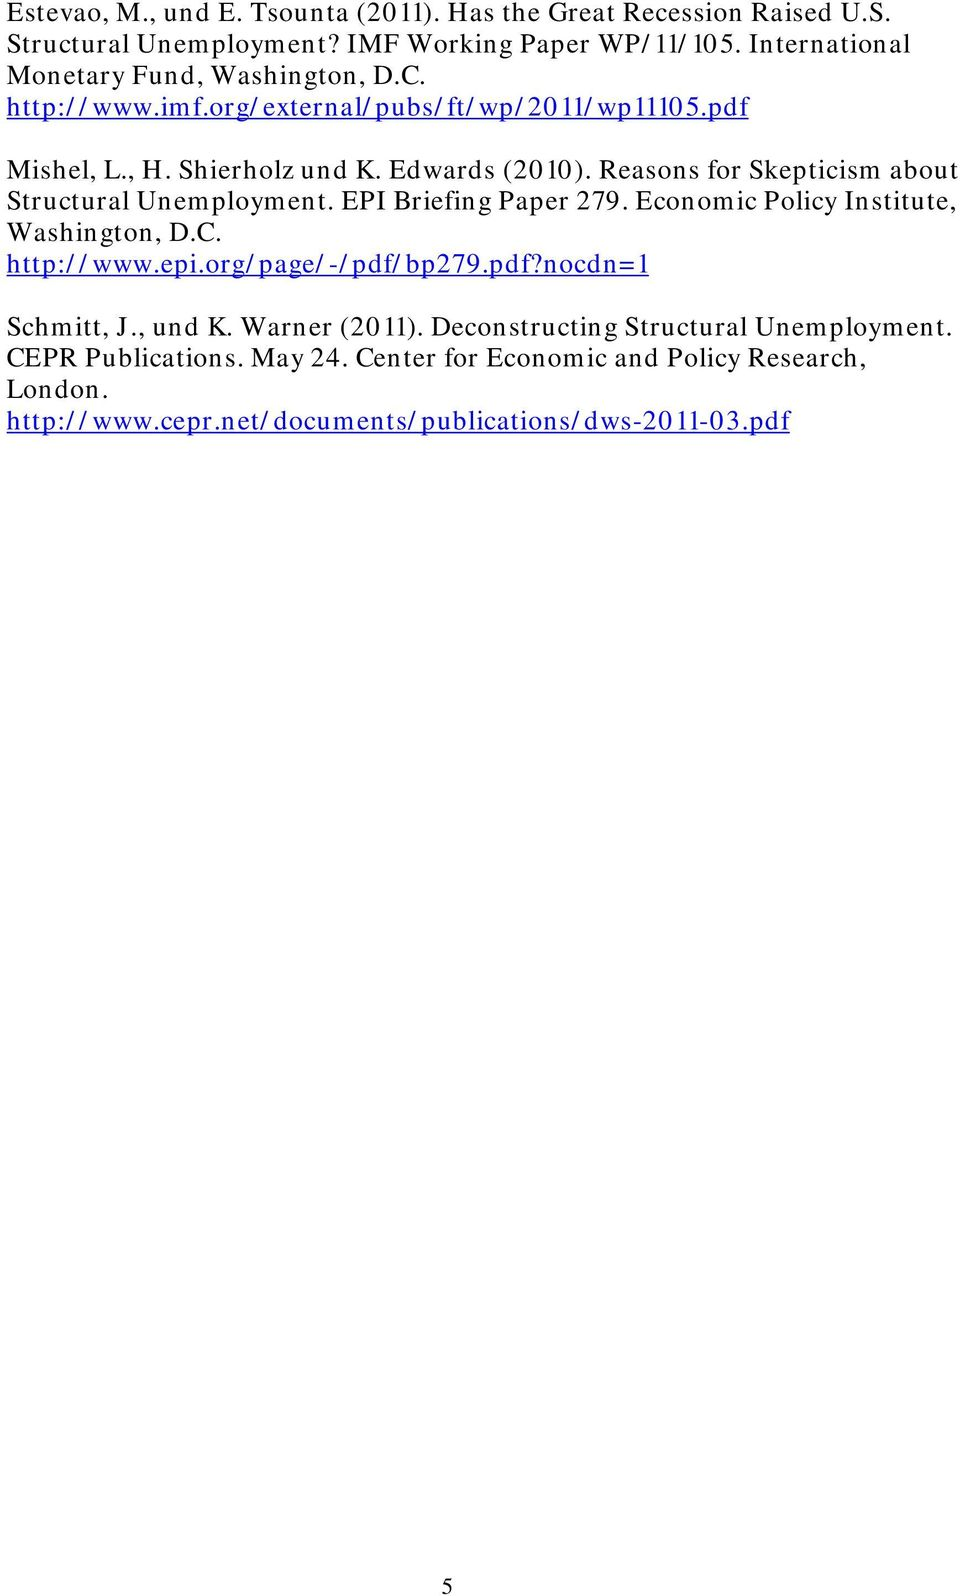 Reasons for Skepticism about Structural Unemployment. EPI Briefing Paper 279. Economic Policy Institute, Washington, D.C. http://www.epi.org/page/-/pdf/